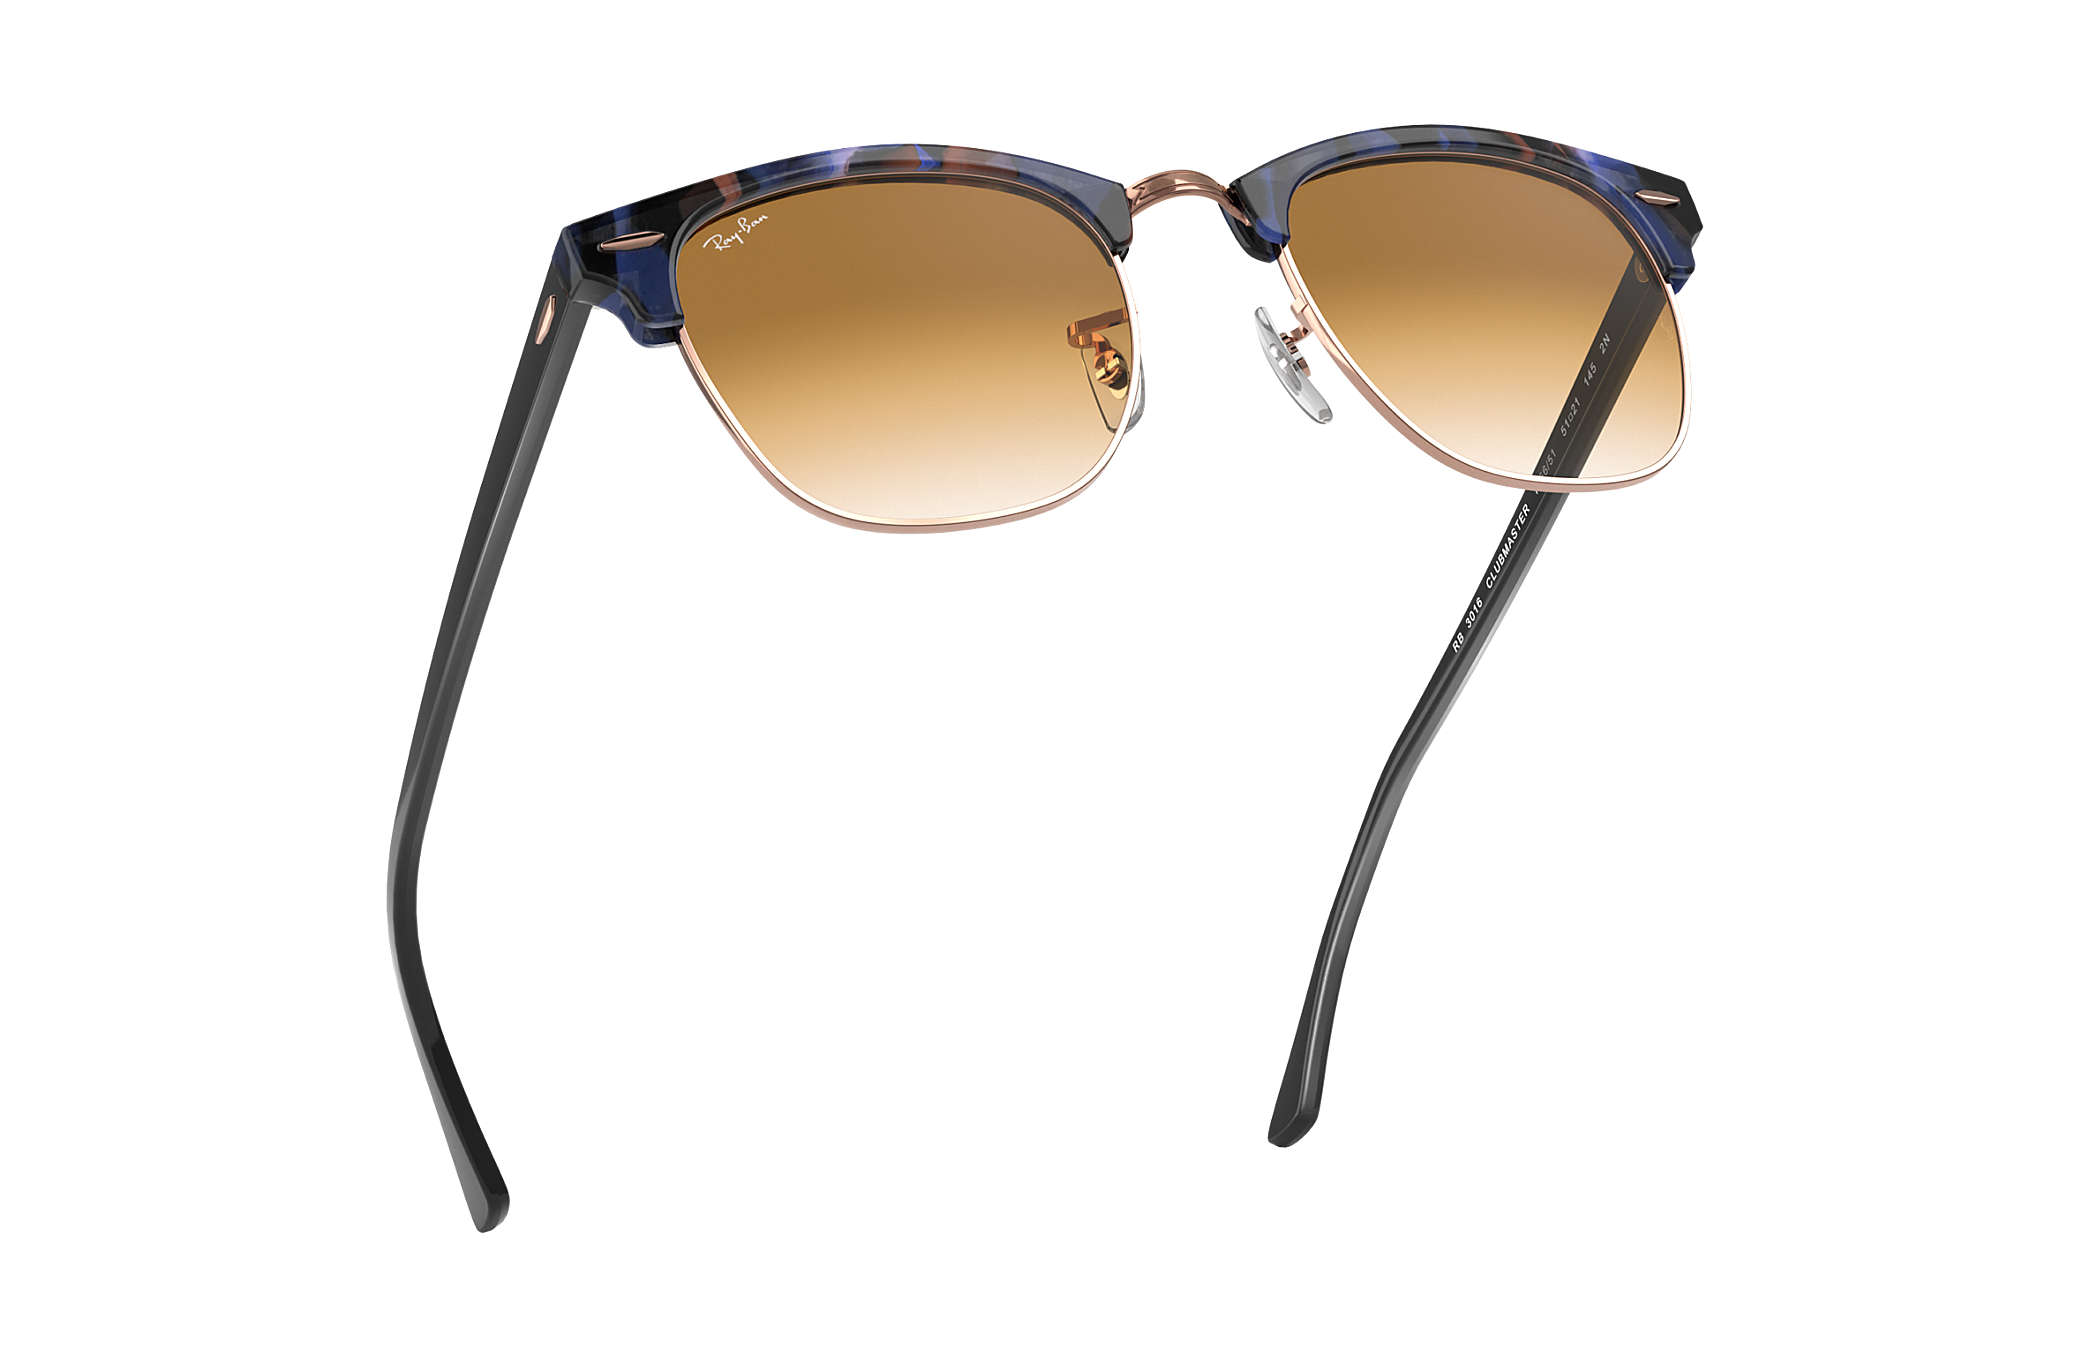 ... Ray-Ban 0RB3016-CLUBMASTER FLECK Spotted Brown and Blue,Tartaruga   Preto SUN ... 2ce30c2226